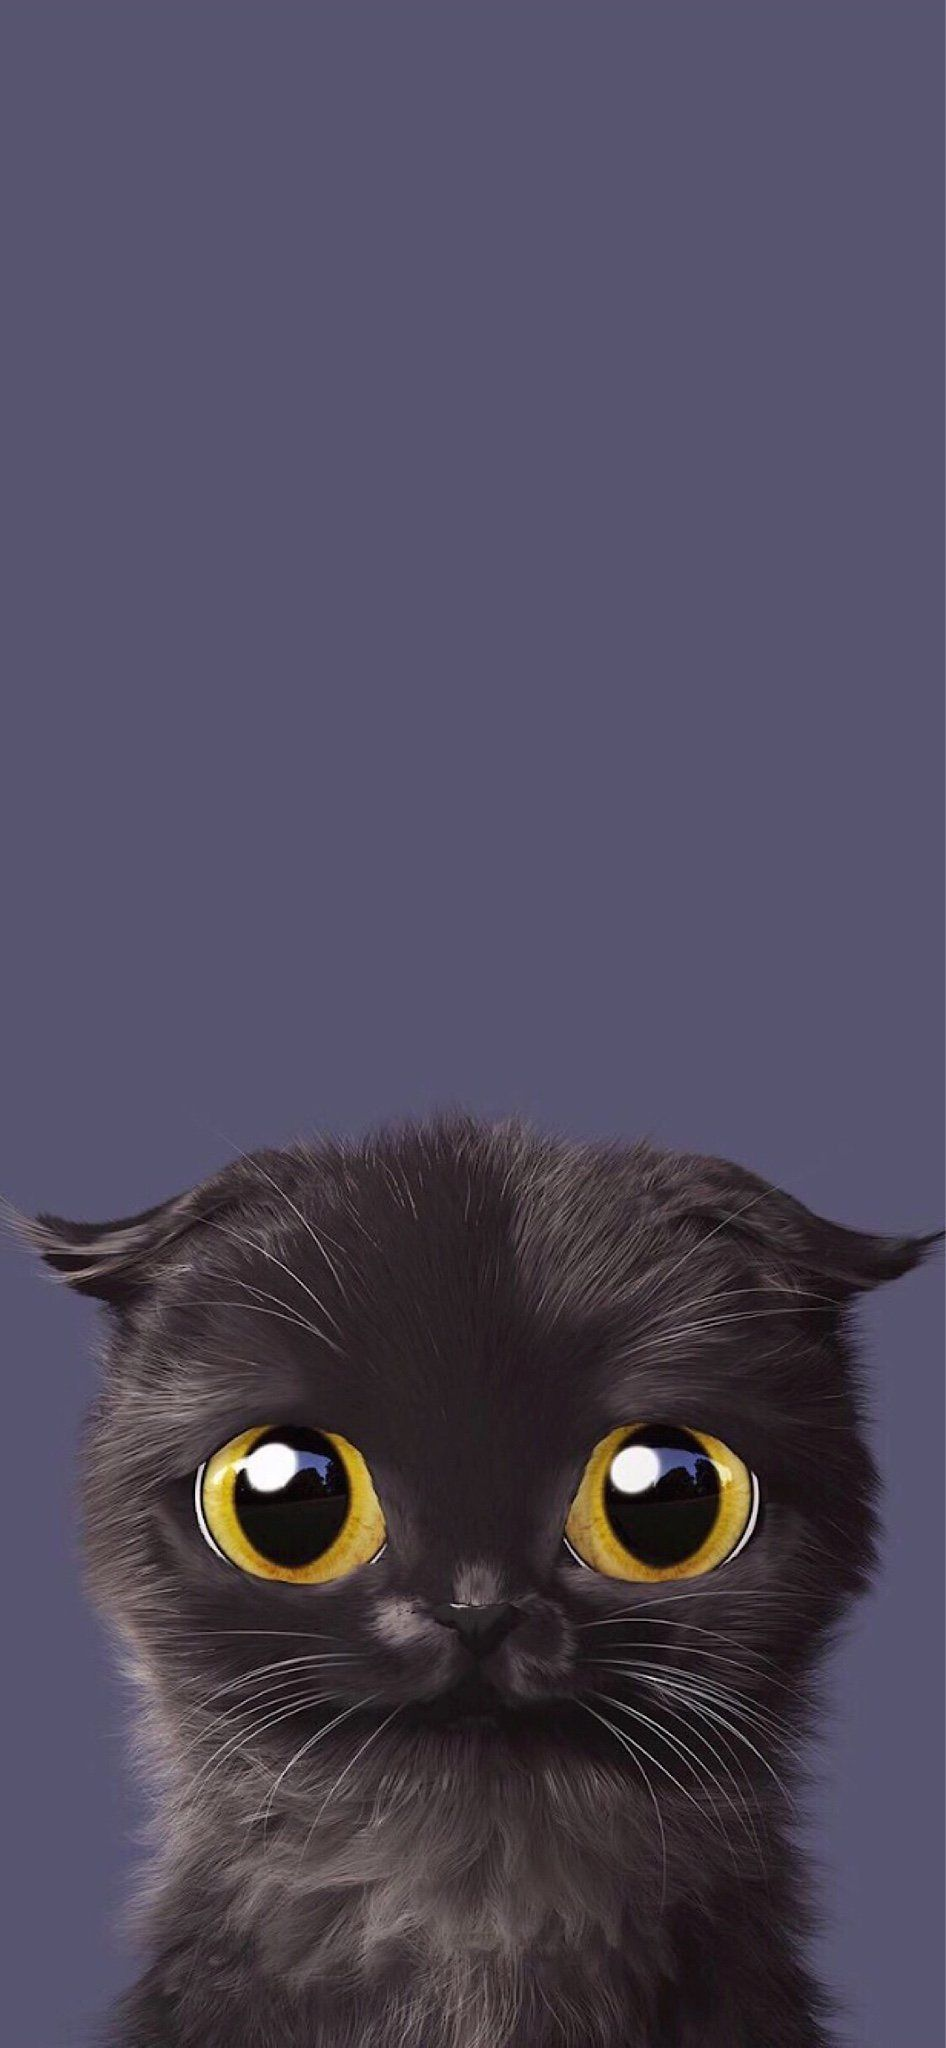 The Iphone X Wallpaper Thread Iphone Ipad Ipod Forums At Imore Com Cute Cat Wallpaper Cat Wallpaper Animal Wallpaper